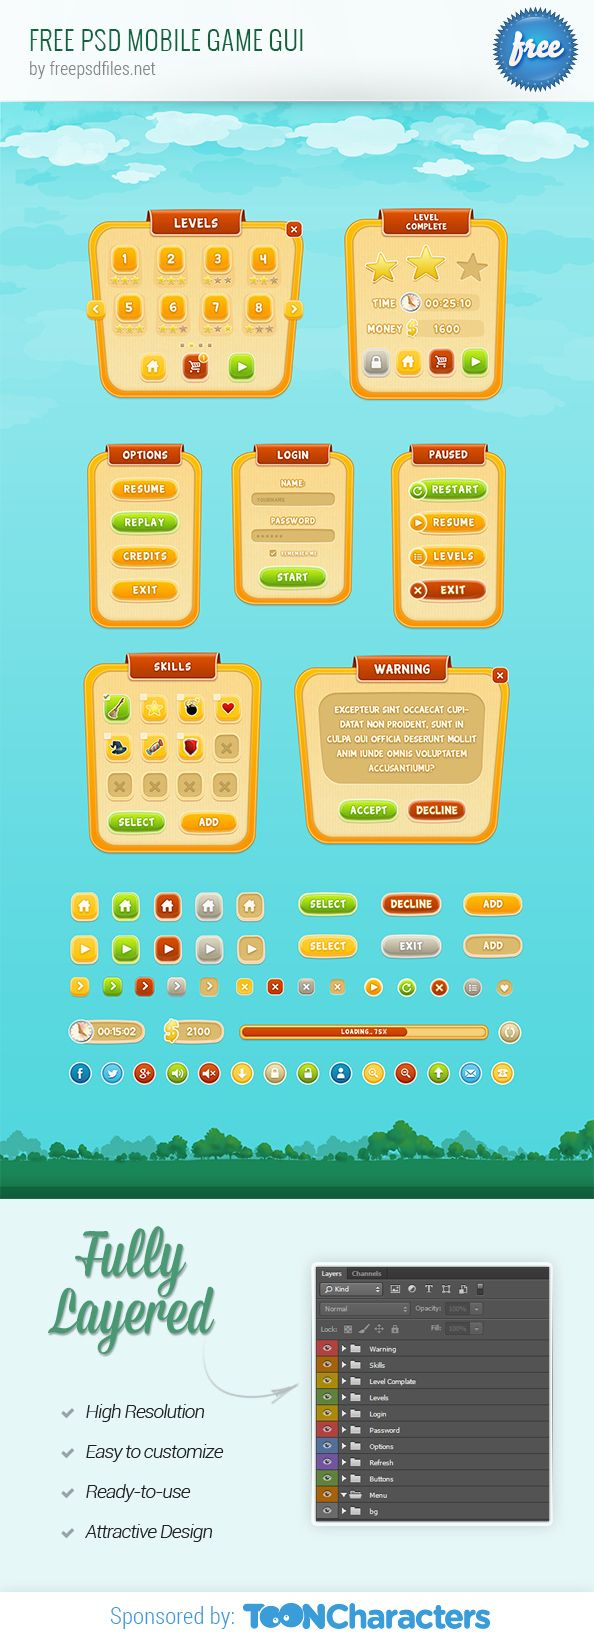 Free psd mobile game GUI that can be used to make a fun application with a clean and fresh look. The set includes any web element you could possible need to make a 2D mobile game. Go ahead and grab the kit now for free! Continue reading →